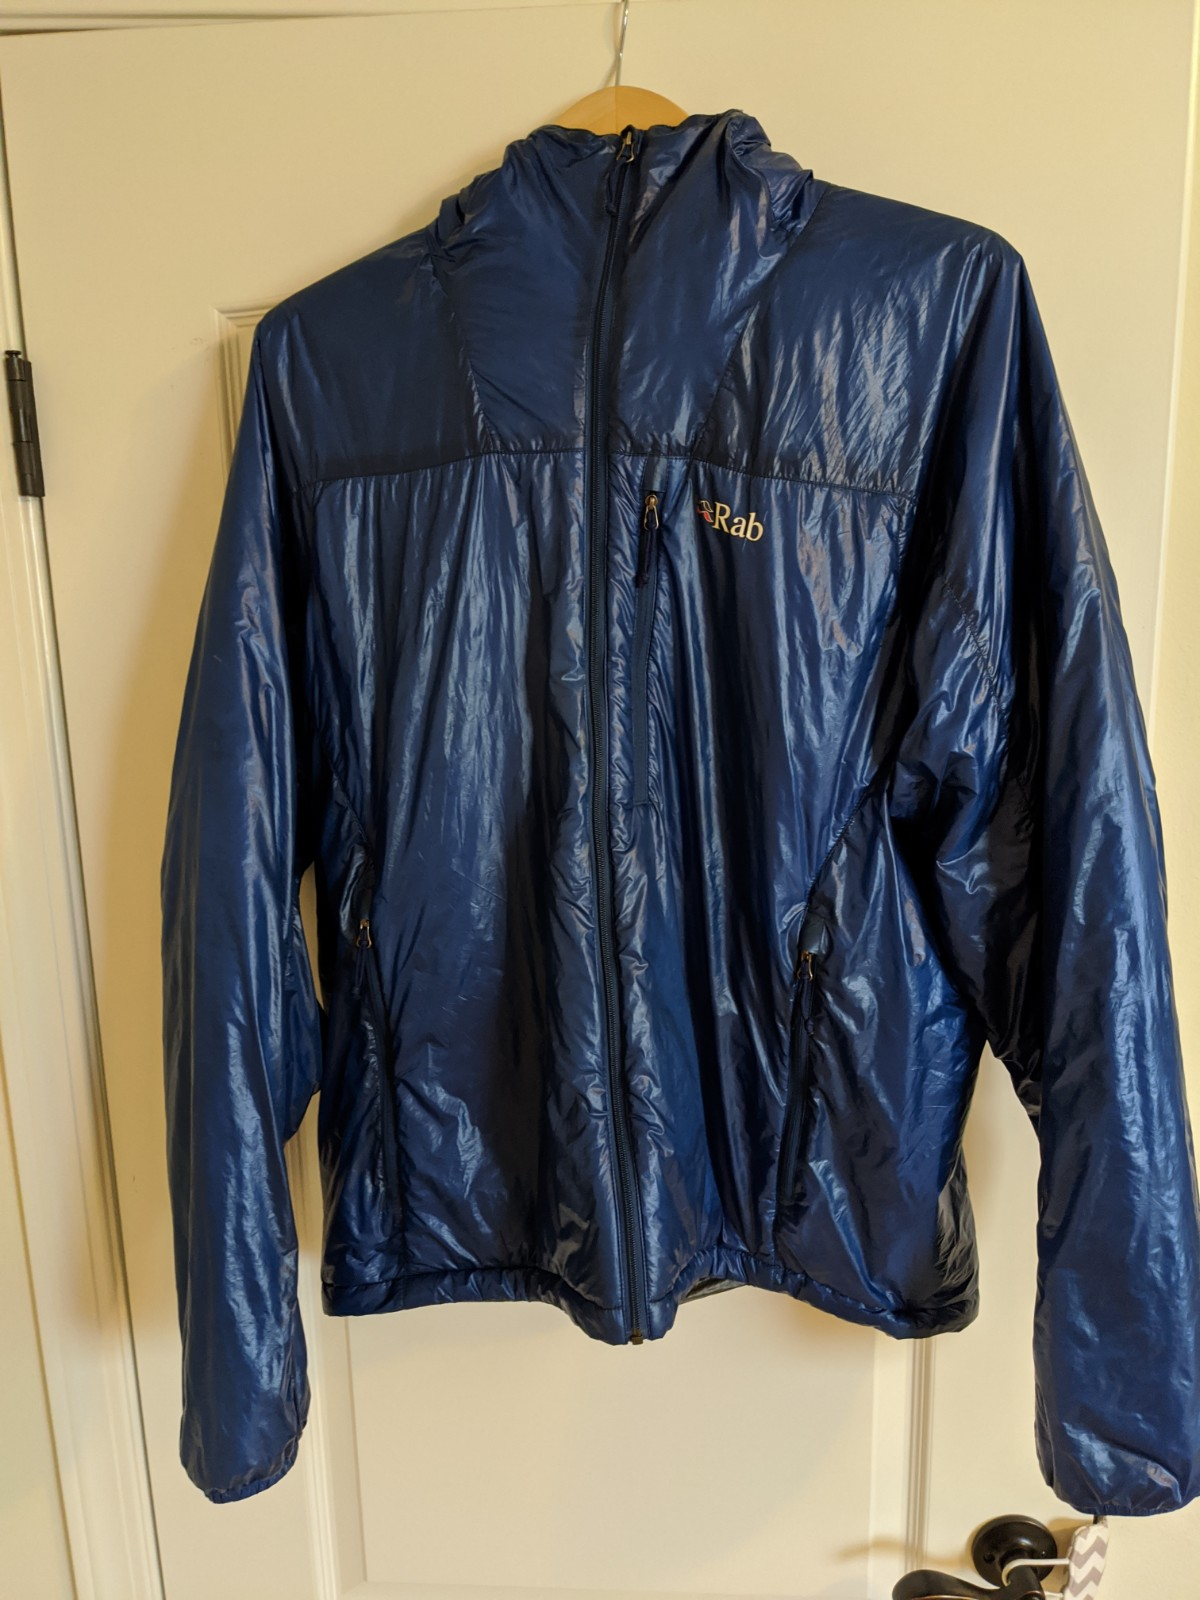 Rab Xenon Insulated Jacket (XL)